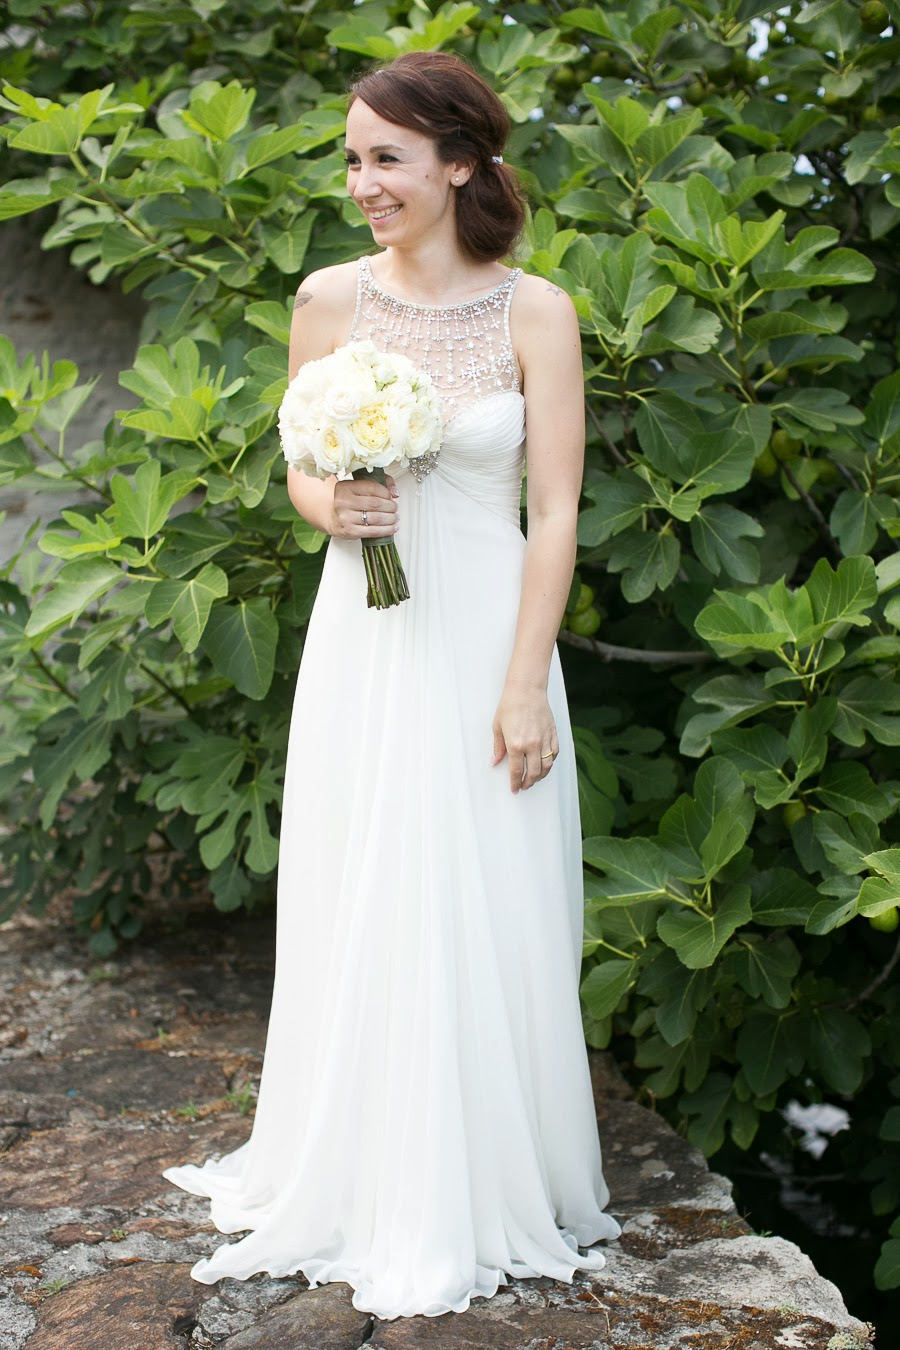 Wedding Event Dress That Women Love Real Wedding Bride Beach Bridal Gown Option